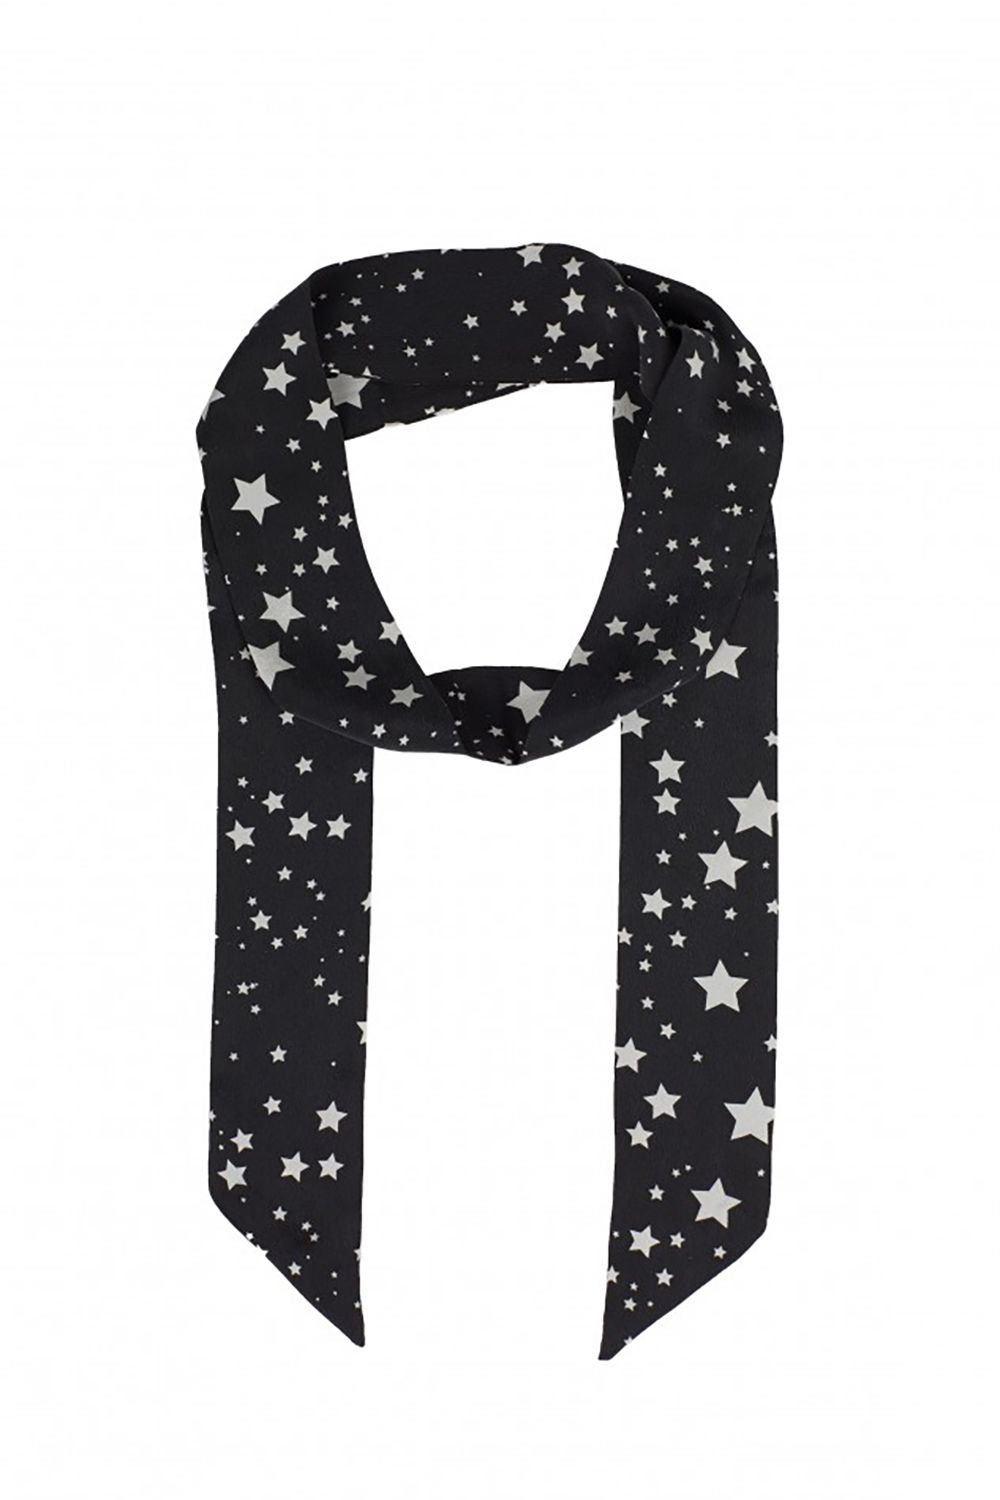 """<p>Build your Glasto lewk around this star-print skinny scarf.</p><p>Kate Moss for Equipment, $78, <a href=""""http://www.equipmentfr.com/shop/accessories/kate-moss-bria-silk-scarf-true-black-nature-white"""" target=""""_blank"""" data-tracking-id=""""recirc-text-link"""">equipmentfr.com</a>.</p>"""